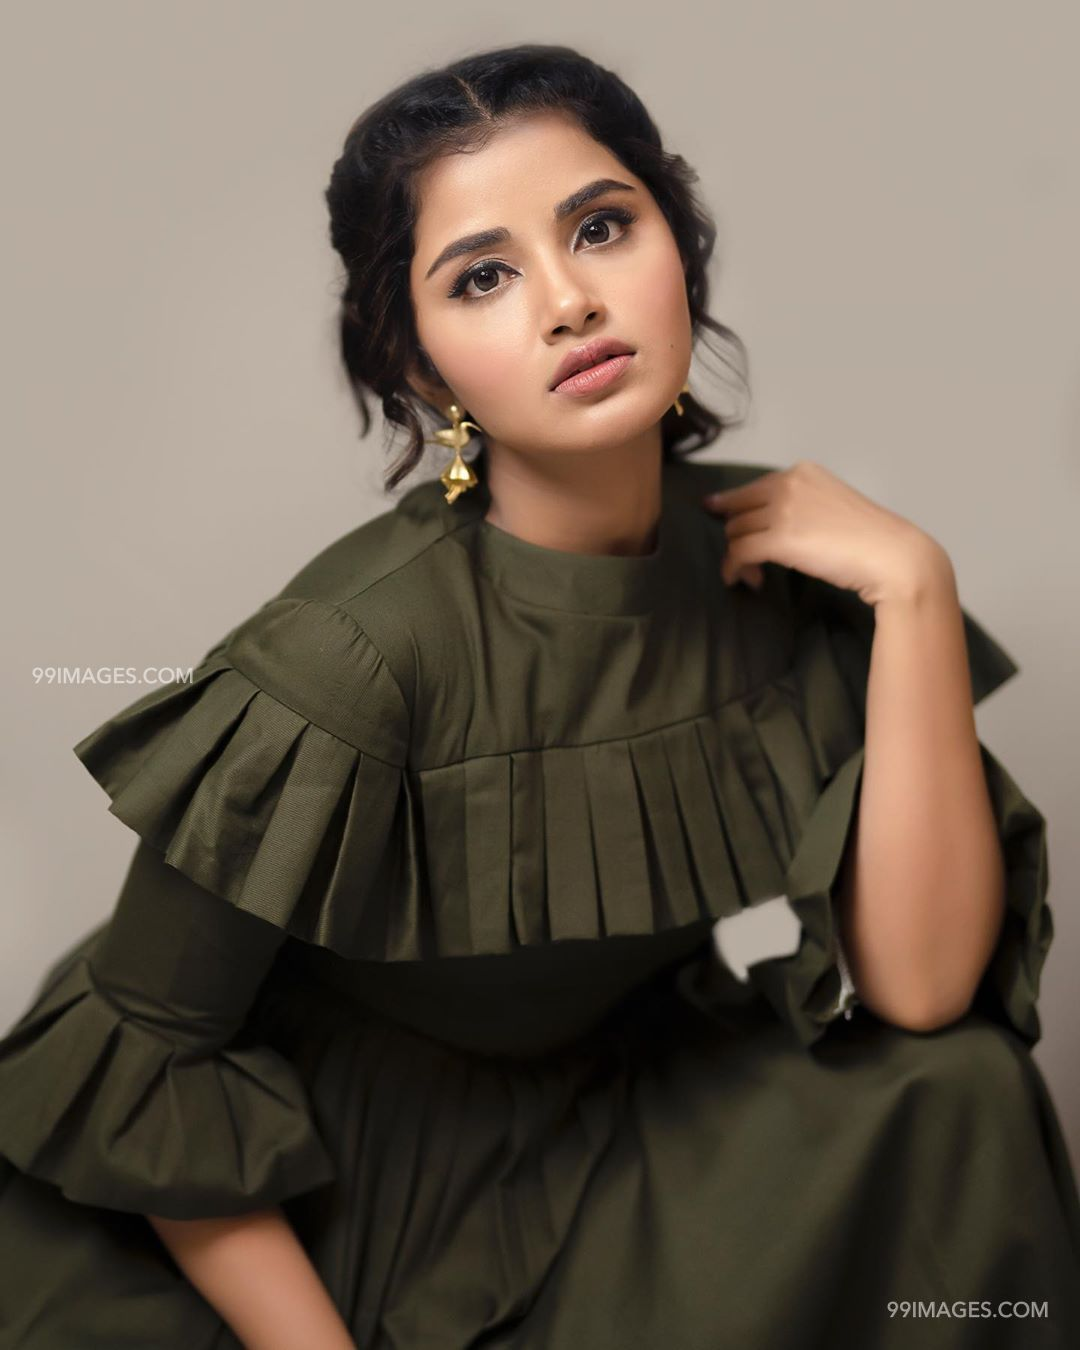 Anupama Parameswaran Beautiful HD Photoshoot Stills & Mobile Wallpapers HD (1080p) (35540) - Anupama Parameswaran